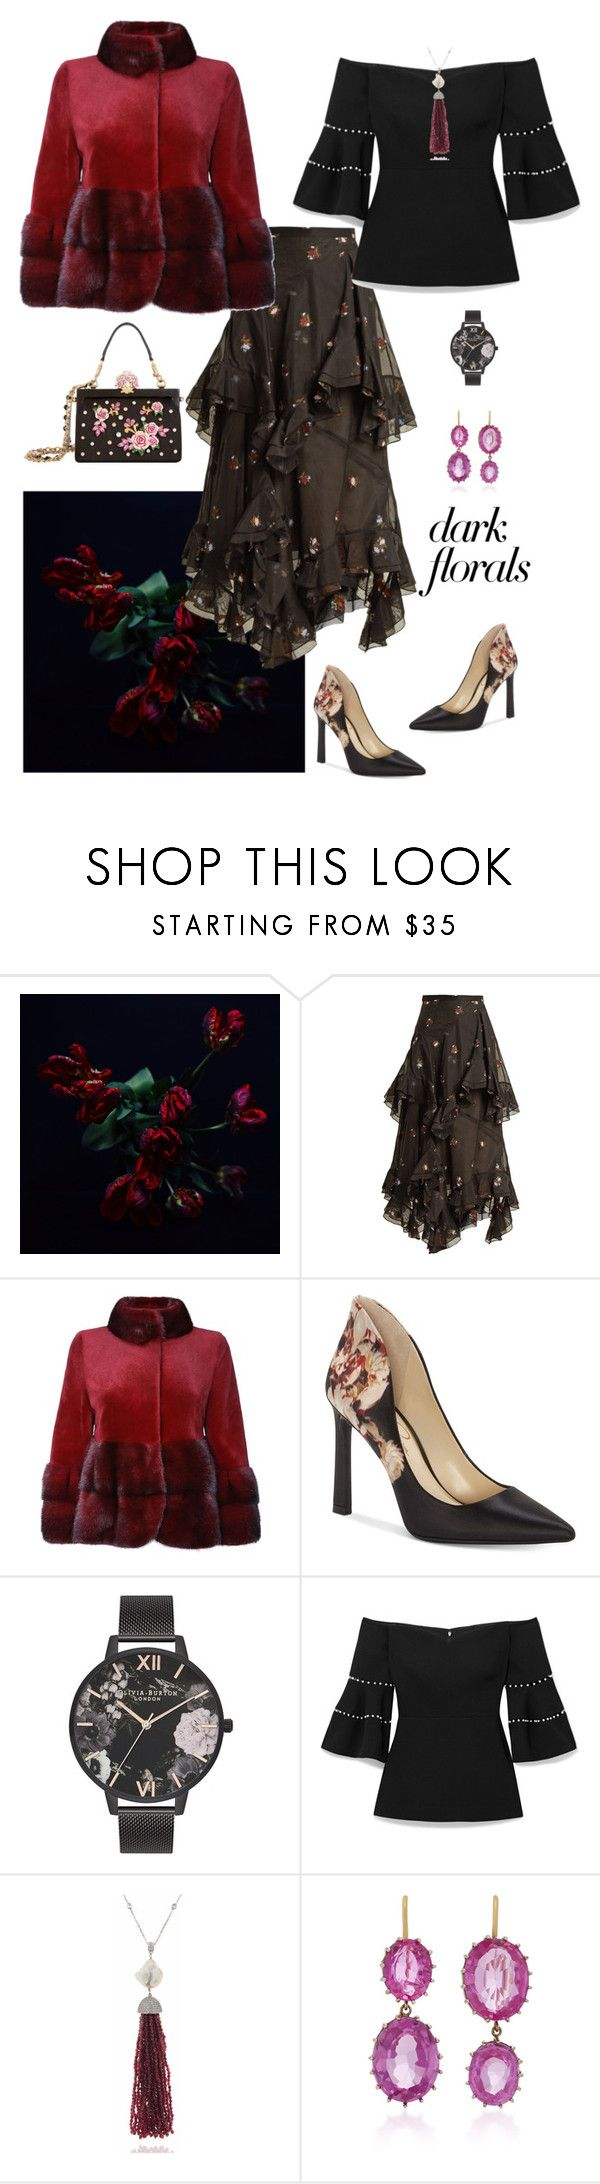 """""""A Flower in the Night🥀"""" by parnett ❤ liked on Polyvore featuring Erdem, Jessica Simpson, Olivia Burton, Lela Rose, Renee Lewis and Dolce&Gabbana"""